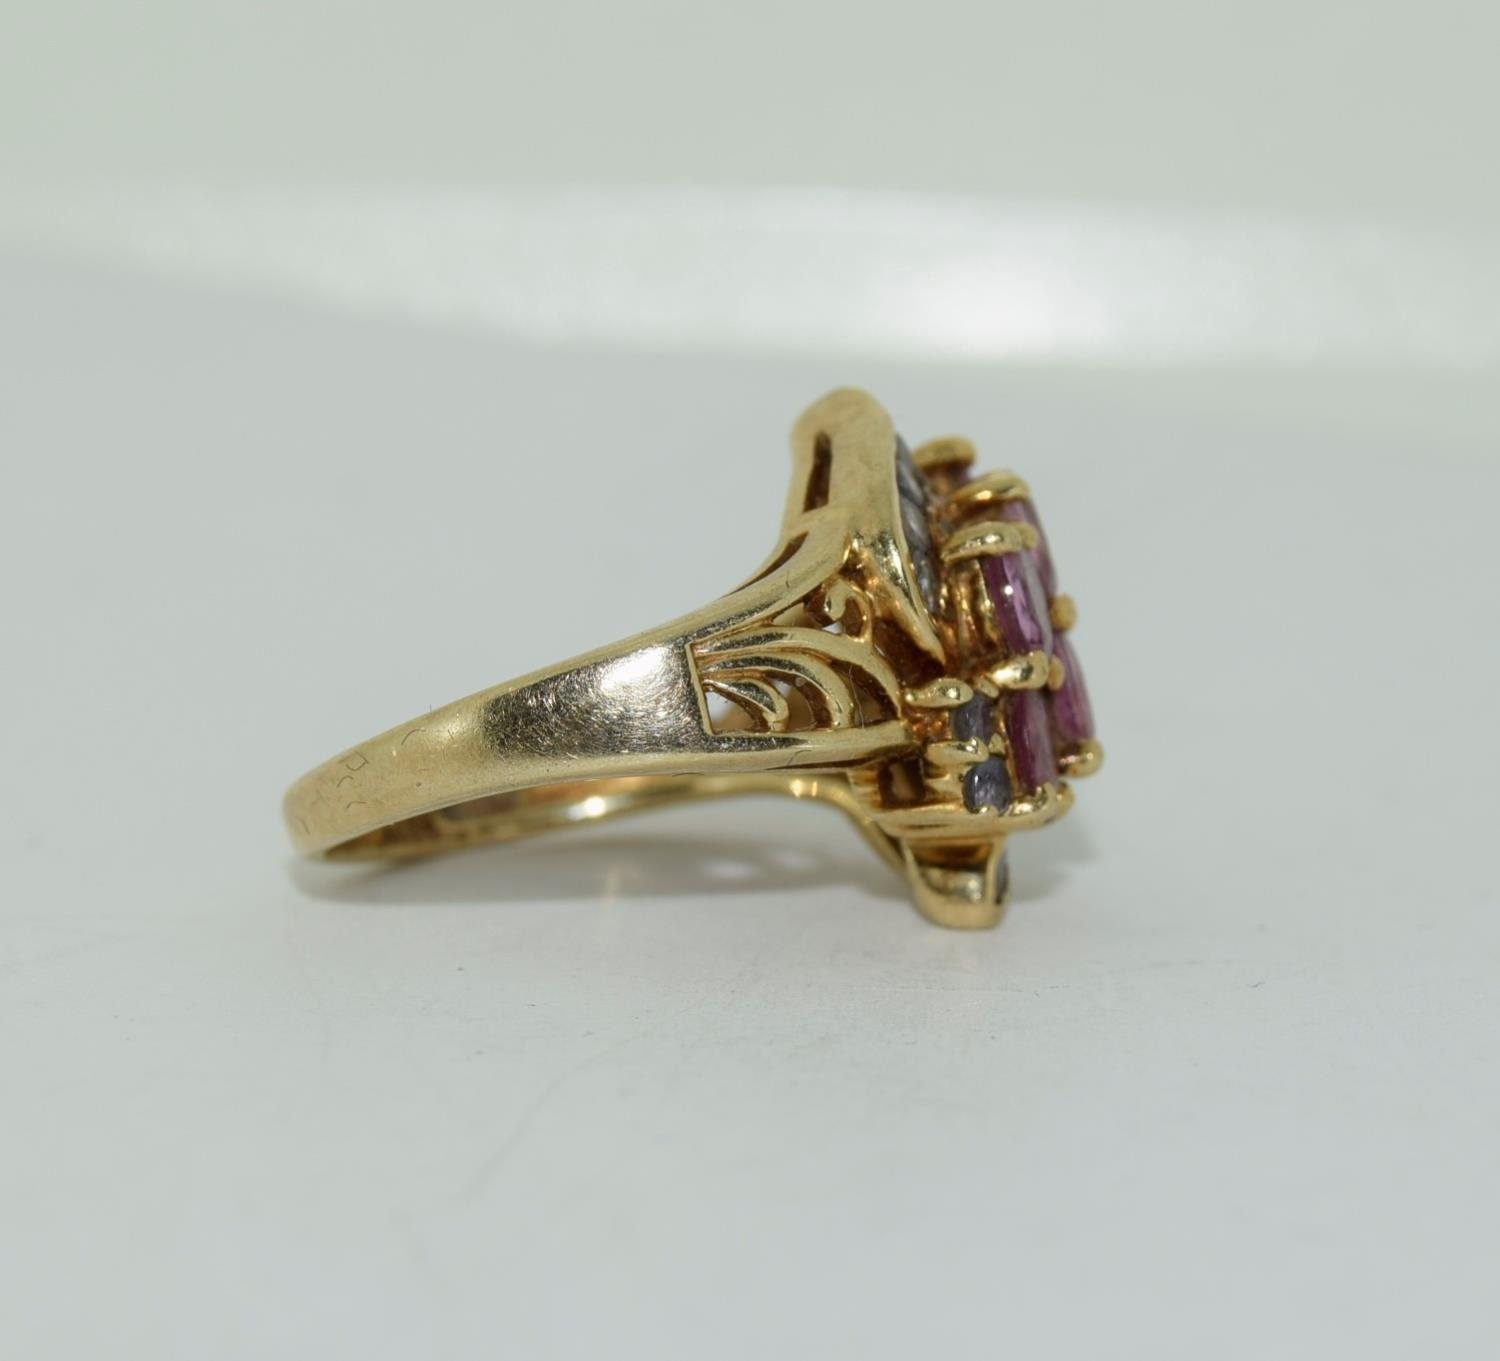 9ct gold ladies pink tourmaline and sapphire twist ring size L 4.9gm - Image 4 of 10